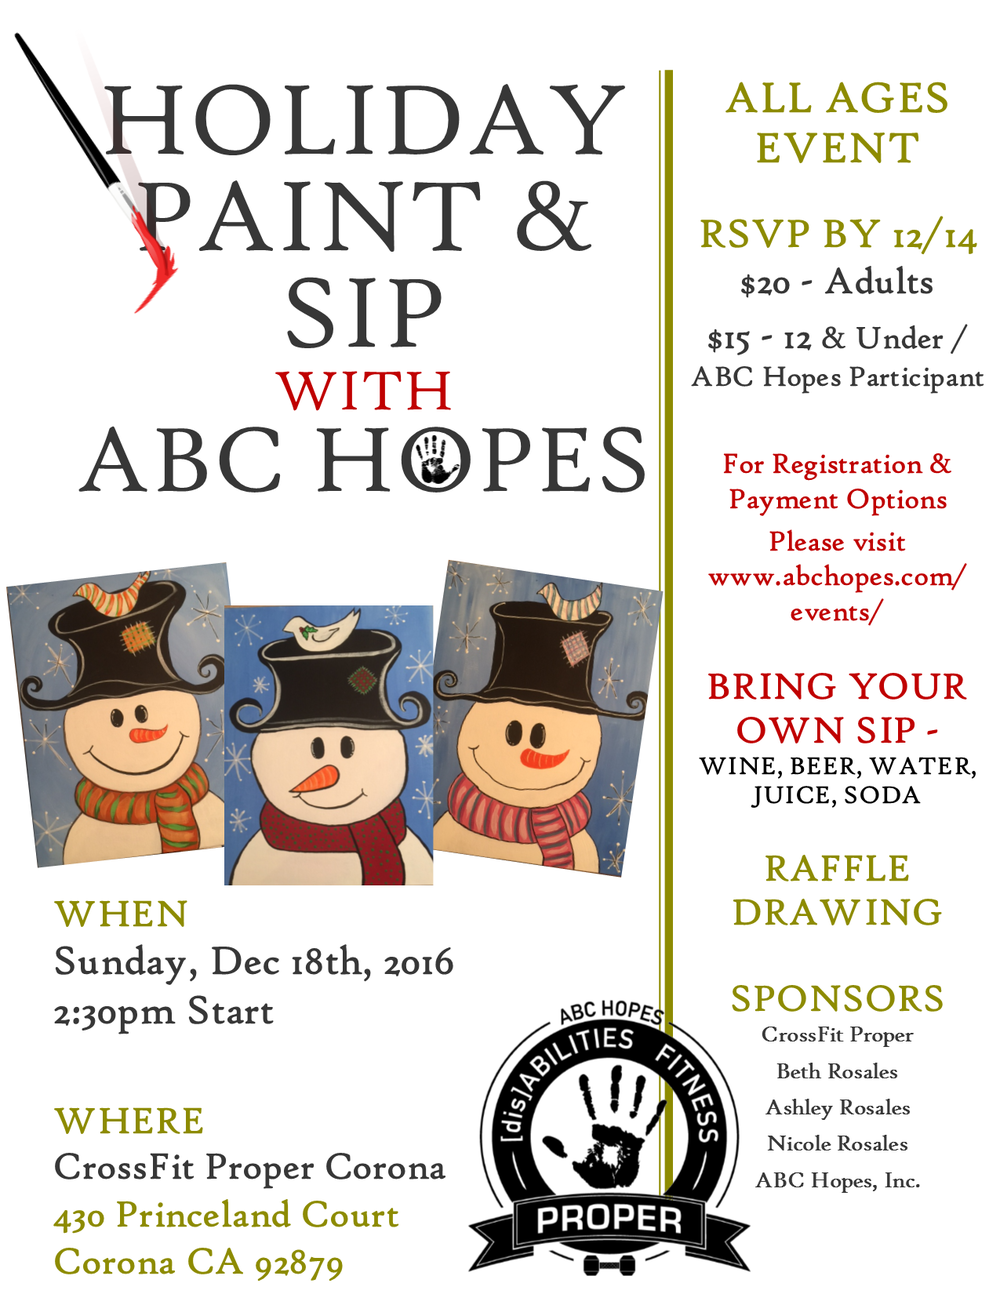 To sign up or for more information visit www.abchopes.com/events